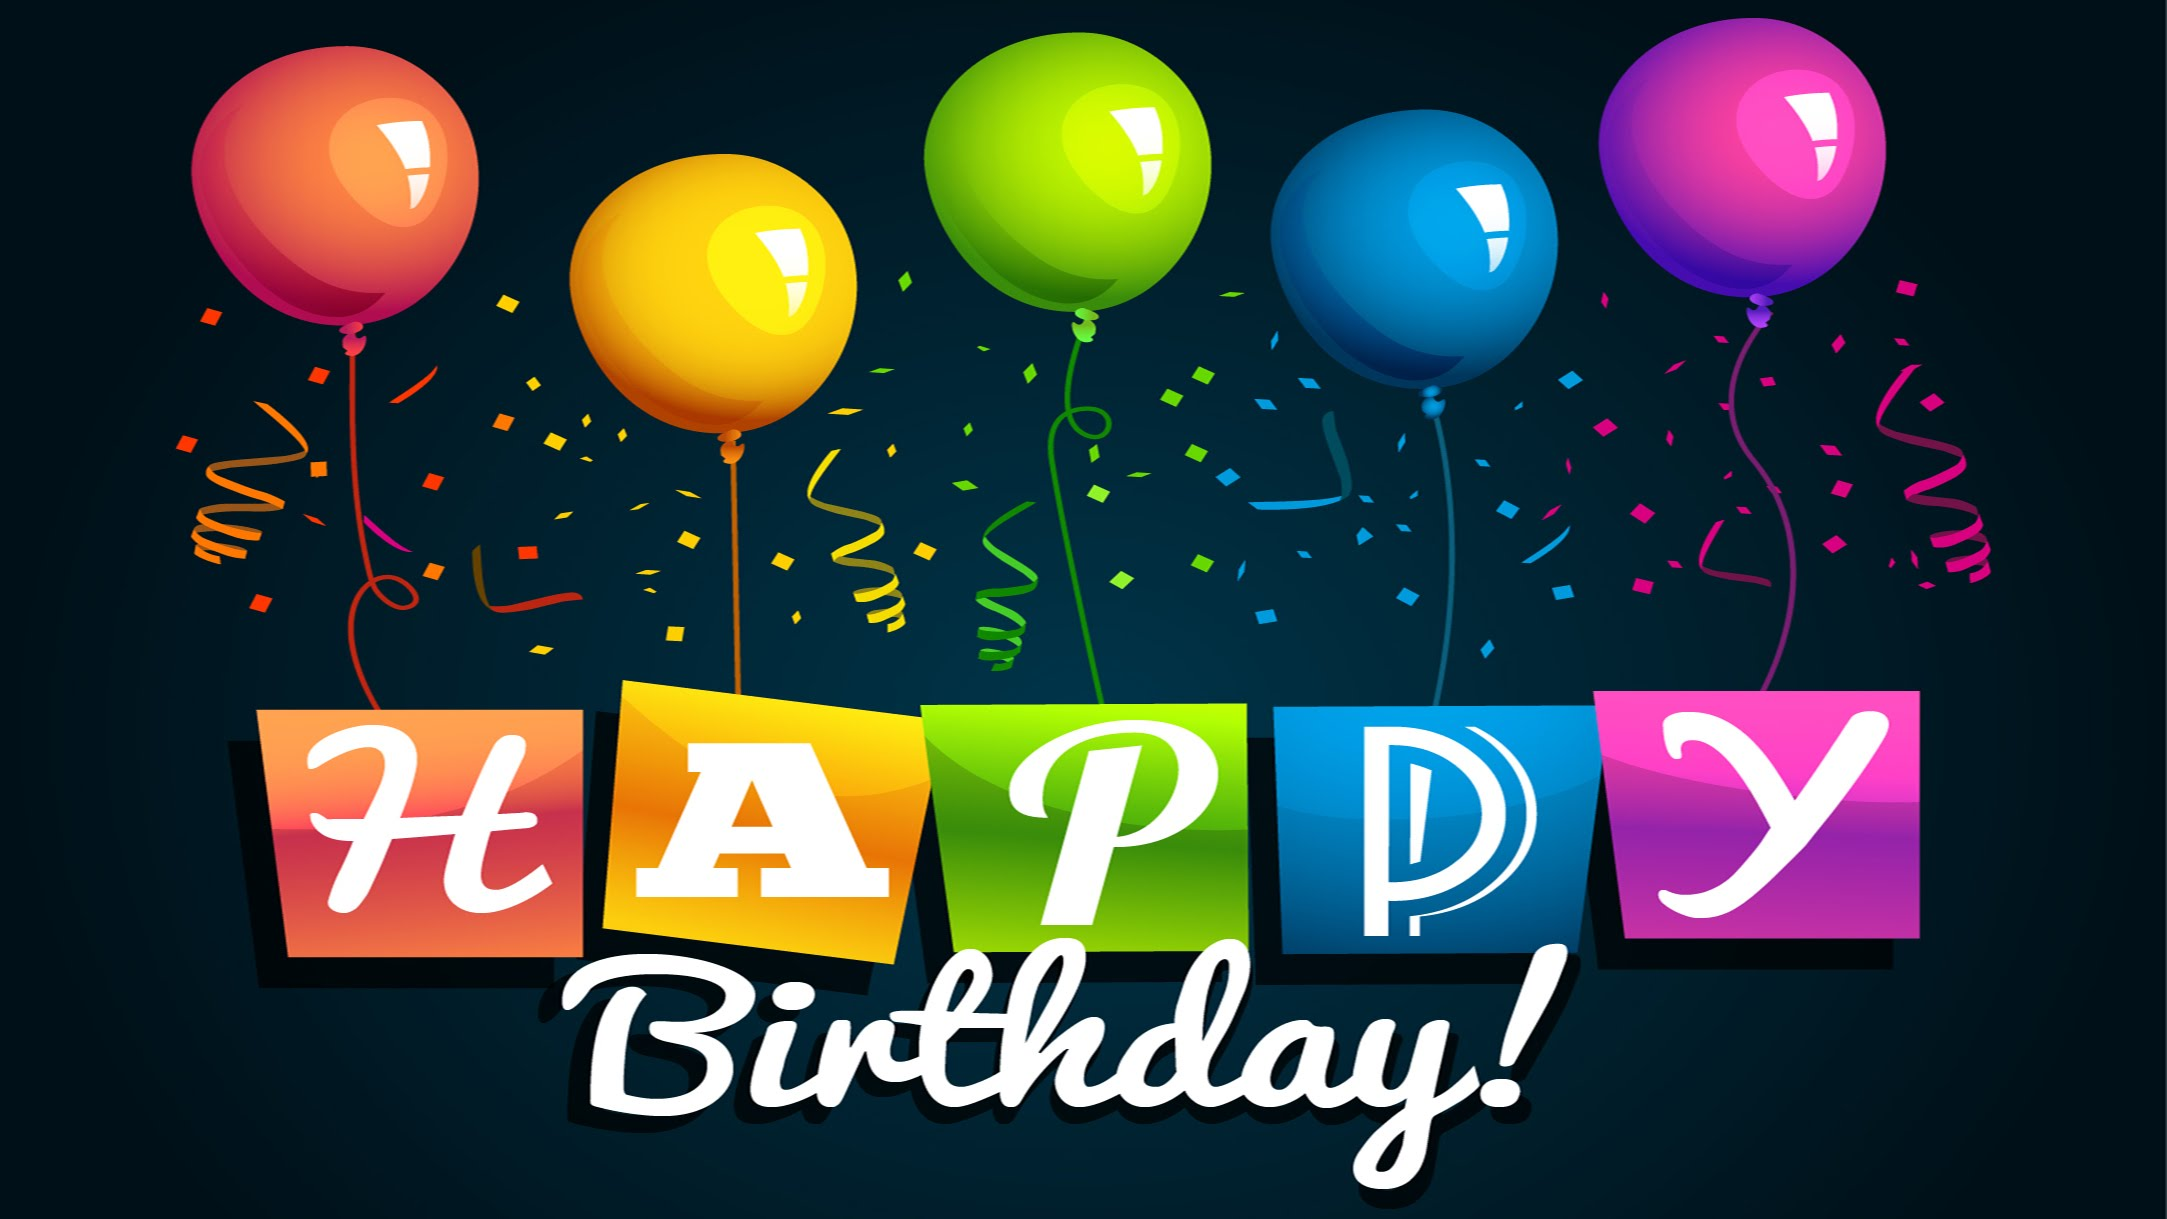 happy birthday image download for mobile ; download-happy-birthday-images-high-quality-desktop-to-you-instrumental-song-greeting-of-mobile-phones